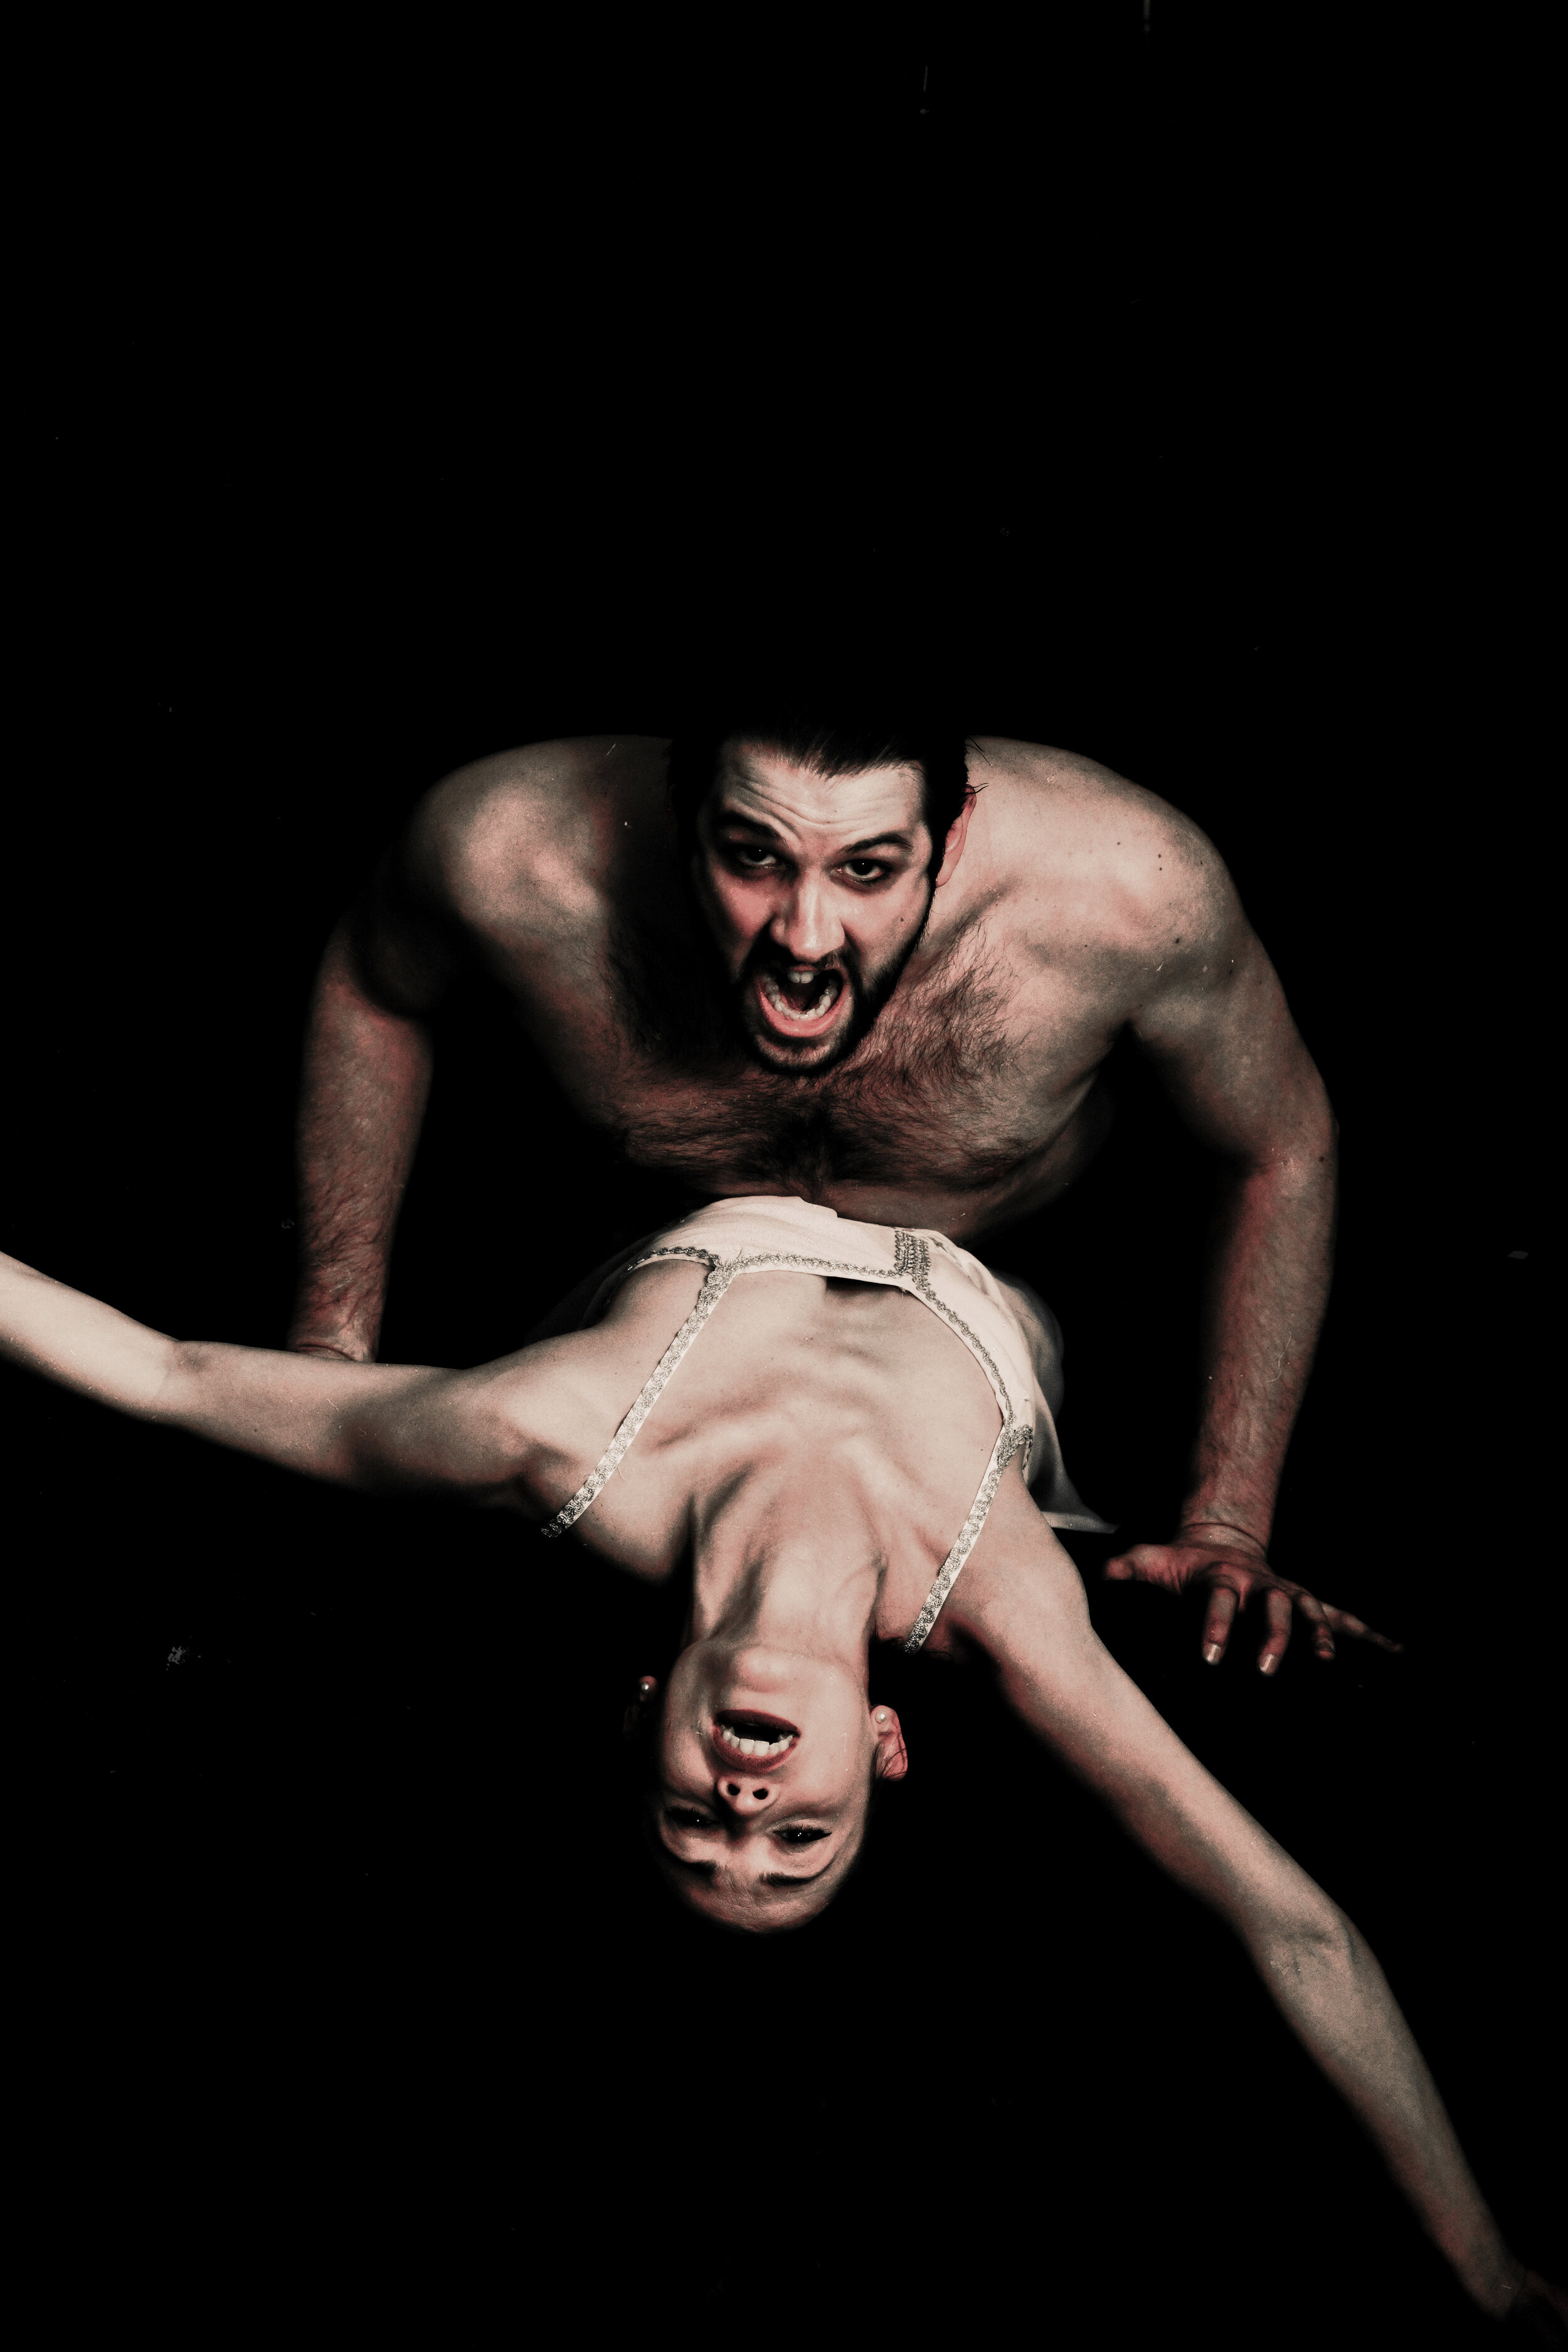 FIRST STATE BALLET THEATRE PRESENTS : DRACULA    A world premiere created by award-winning choreographer and frequent FSBT collaborator Viktor Plotnikov. Based on the gothic novel by Irish author Bram Stoker,  Dracula will be a completely intriguing and captivating performance not to be missed!